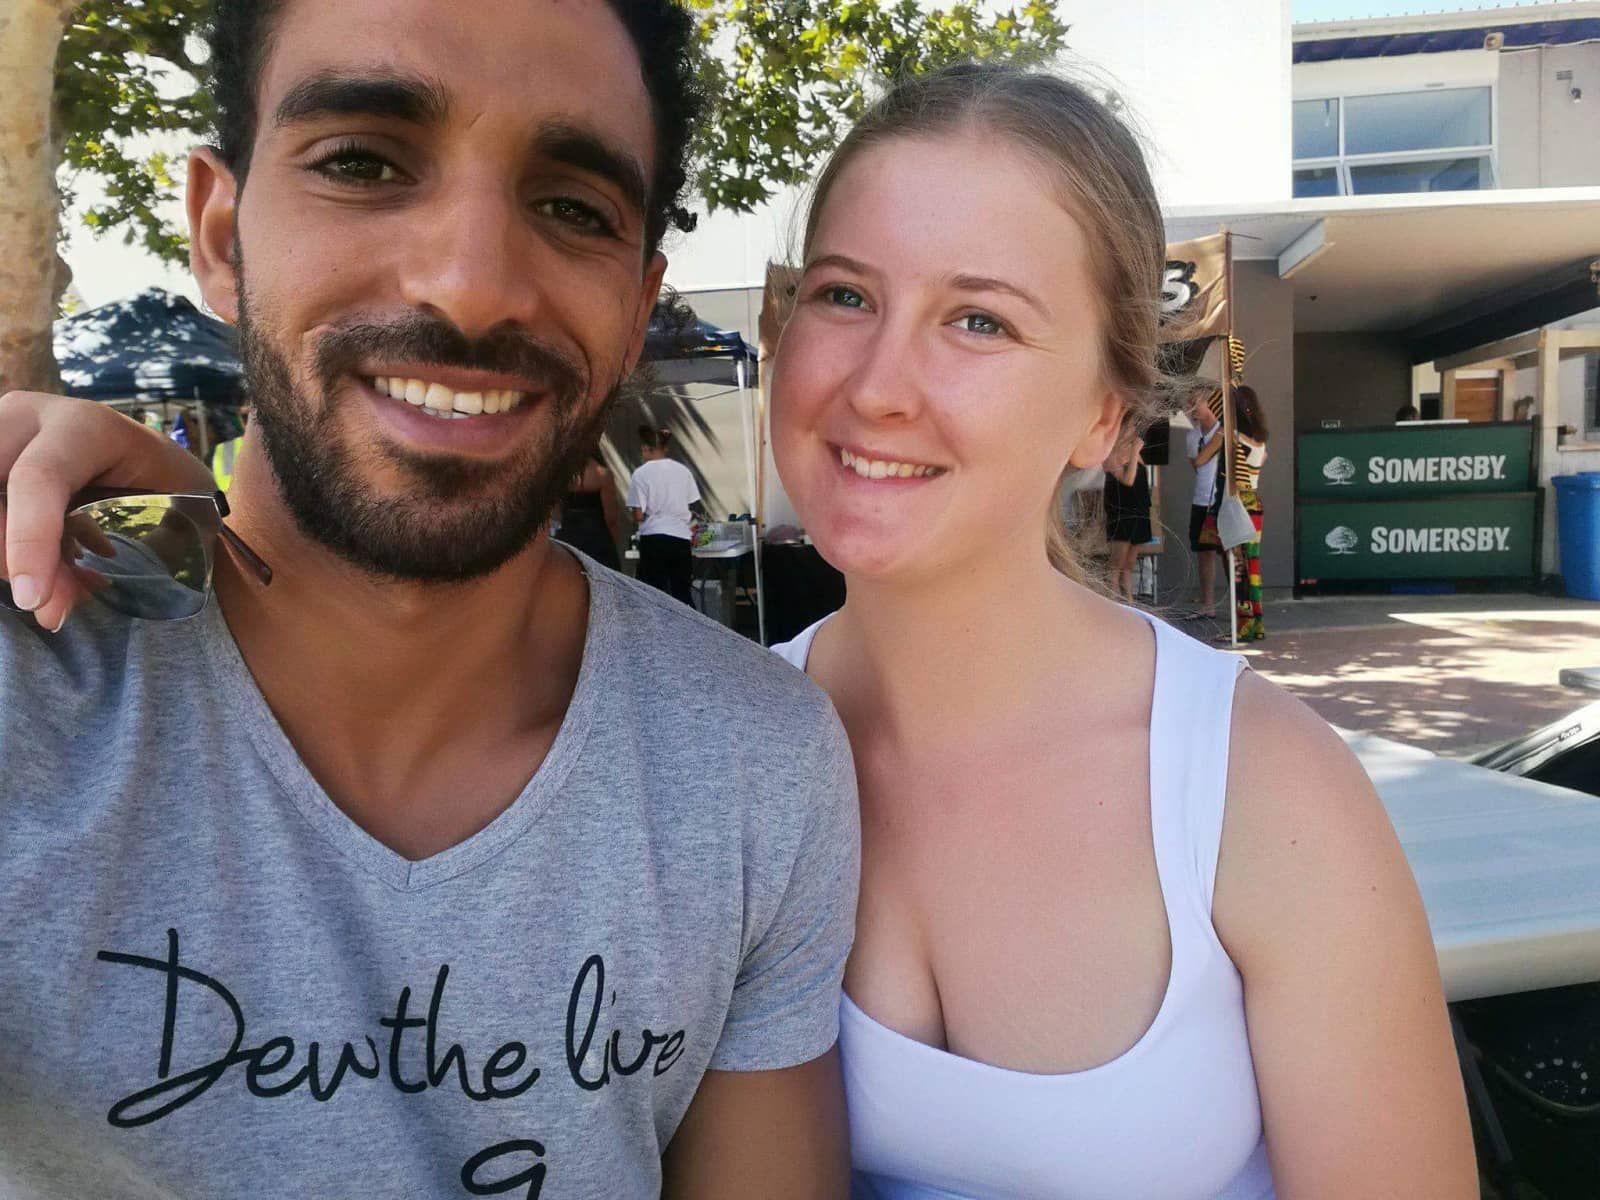 Chelsea & Hamza from Manly, New South Wales, Australia